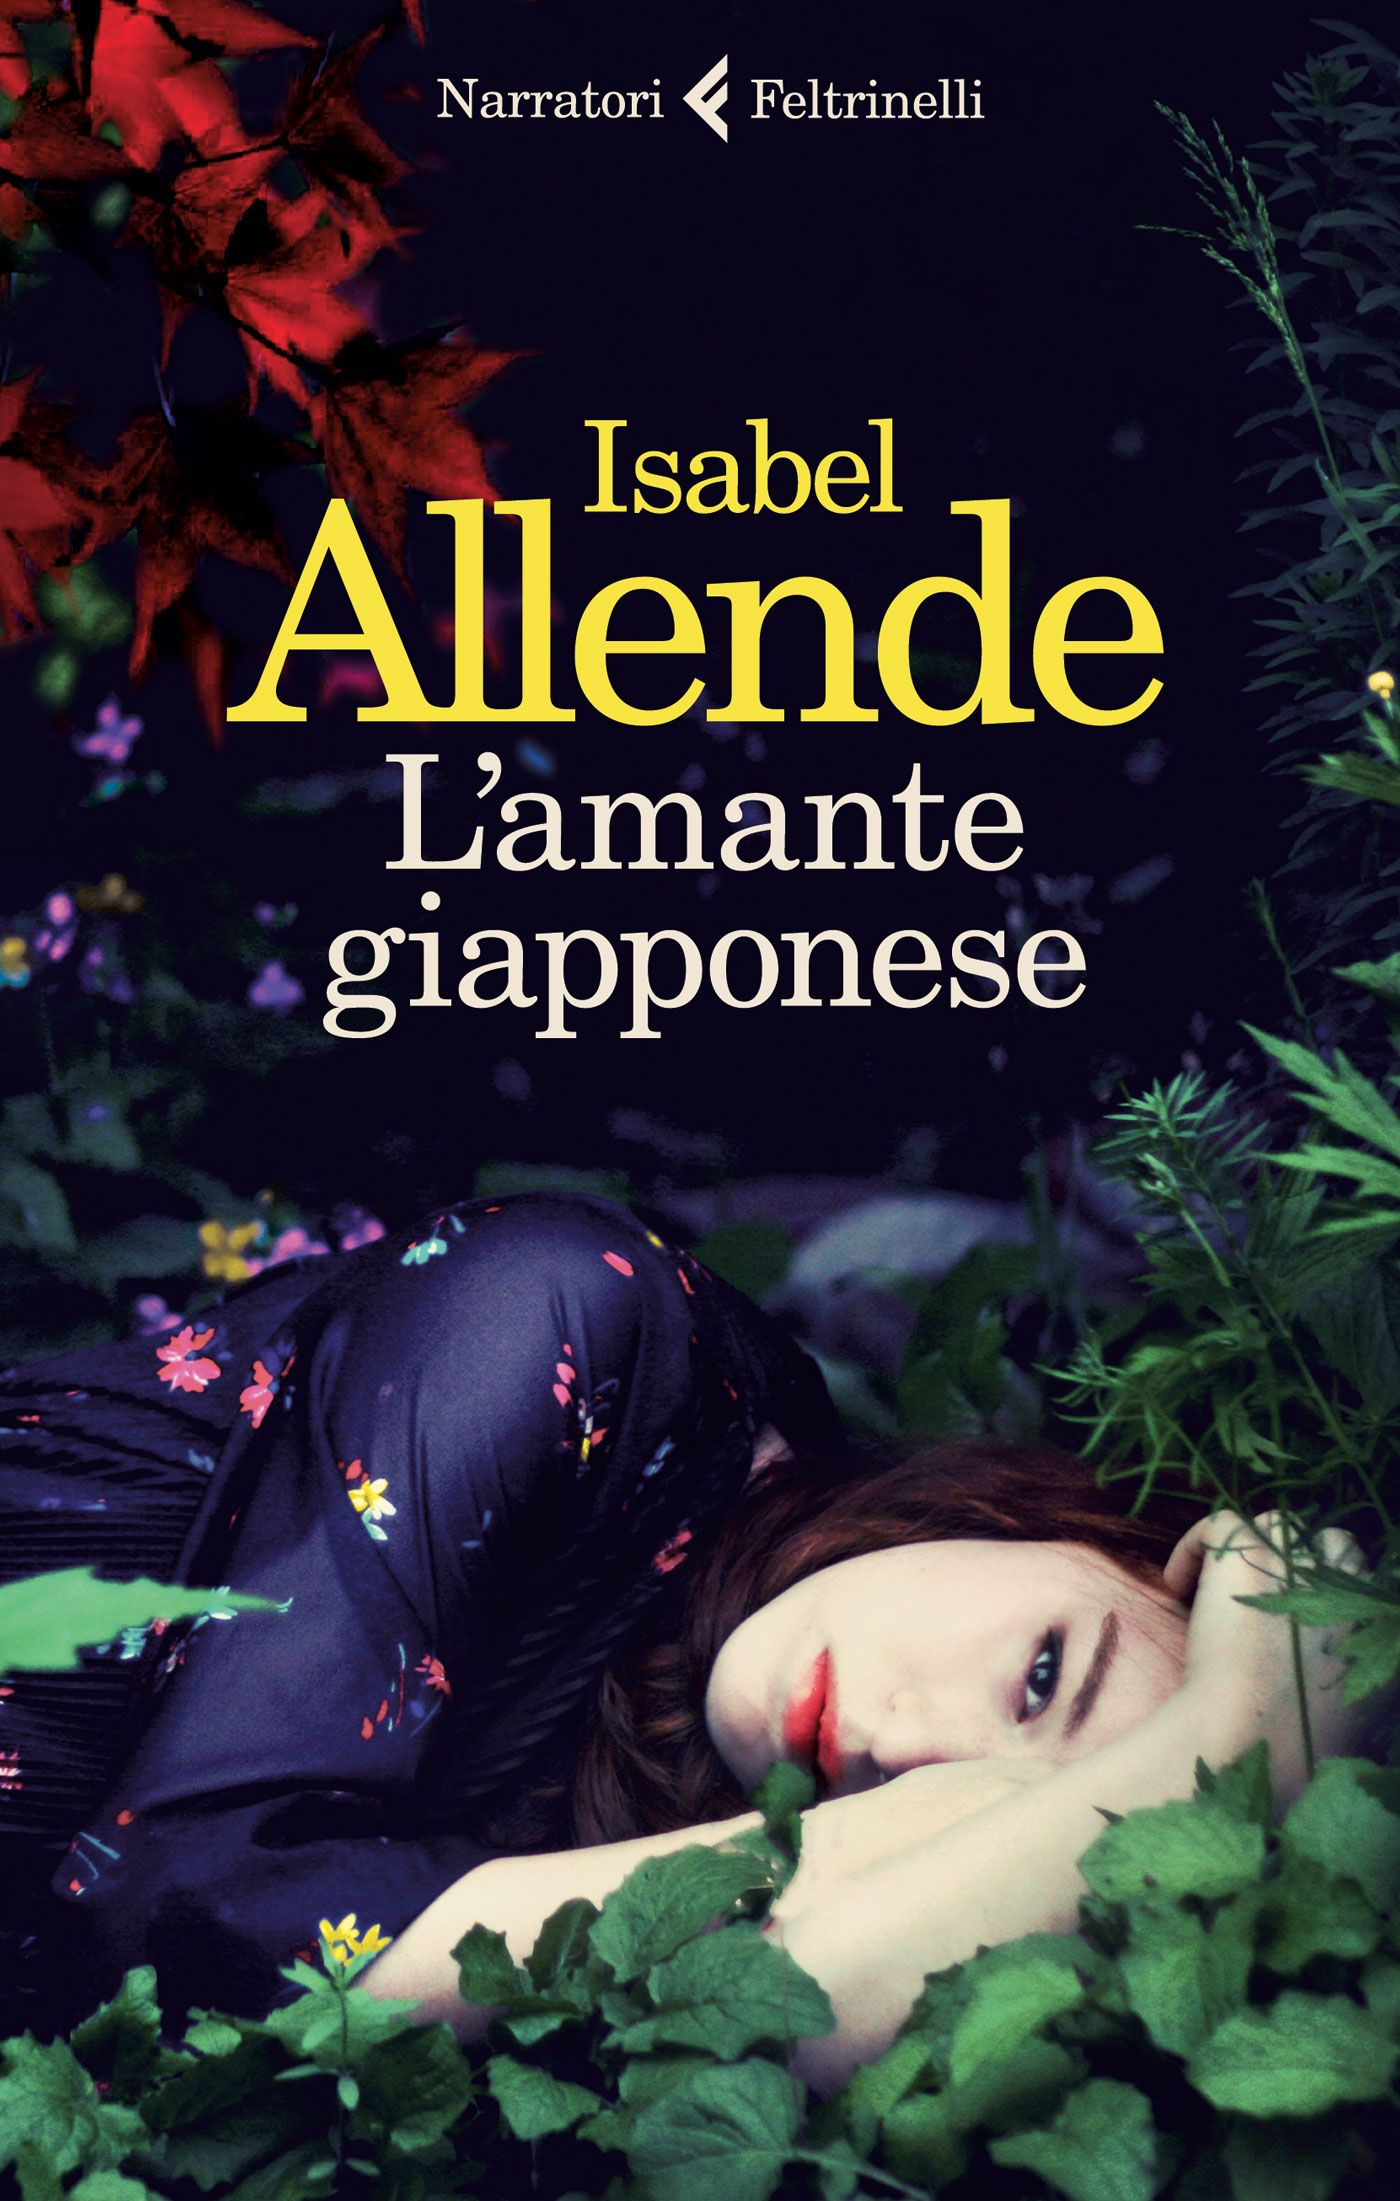 lamante giapponese cover